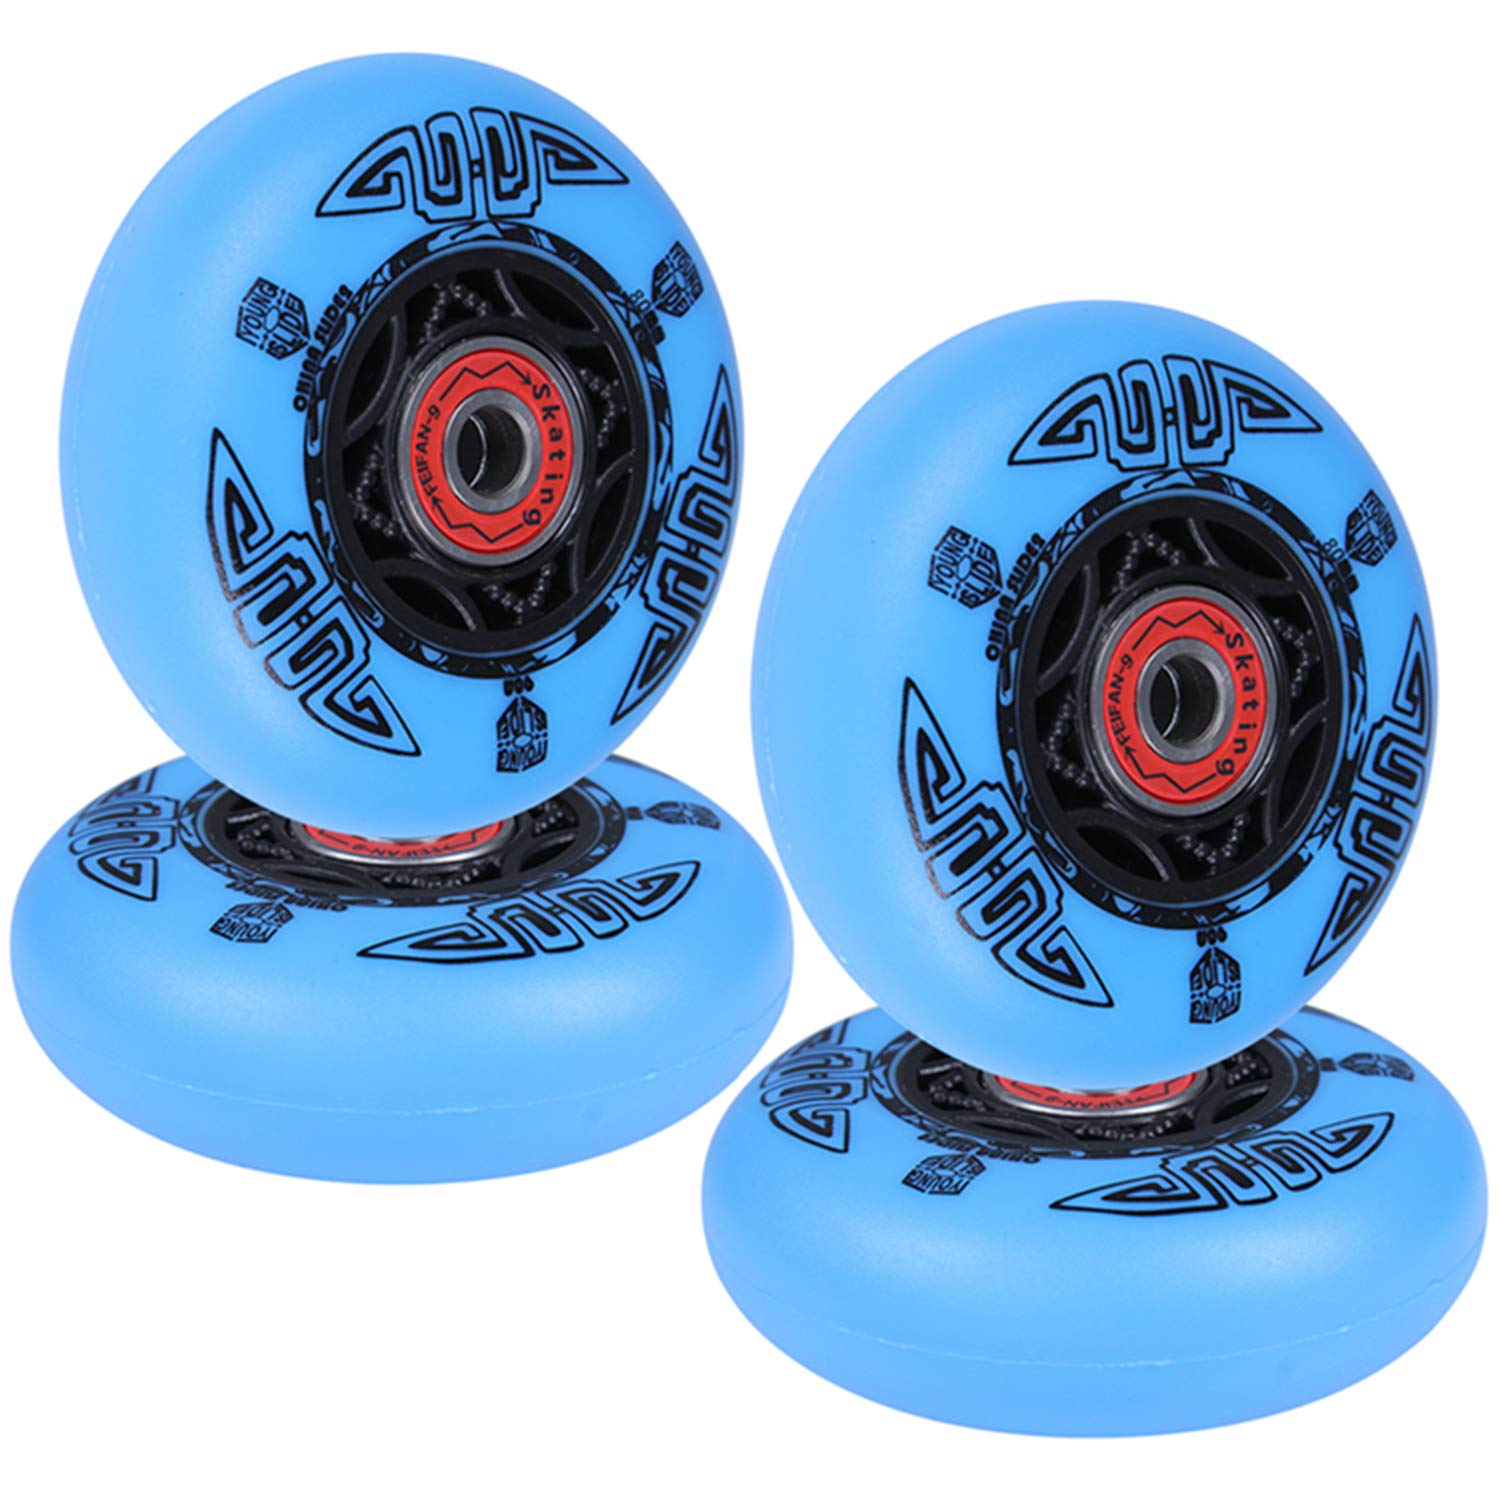 AOWISH 4-Pack Inline Skate Wheels Outdoor Asphalt Formula 90A Aggressive Inline Skates Replacement Wheel with Pre-Installed Bearings ABEC 9 (Blue, 80mm) by AOWISH